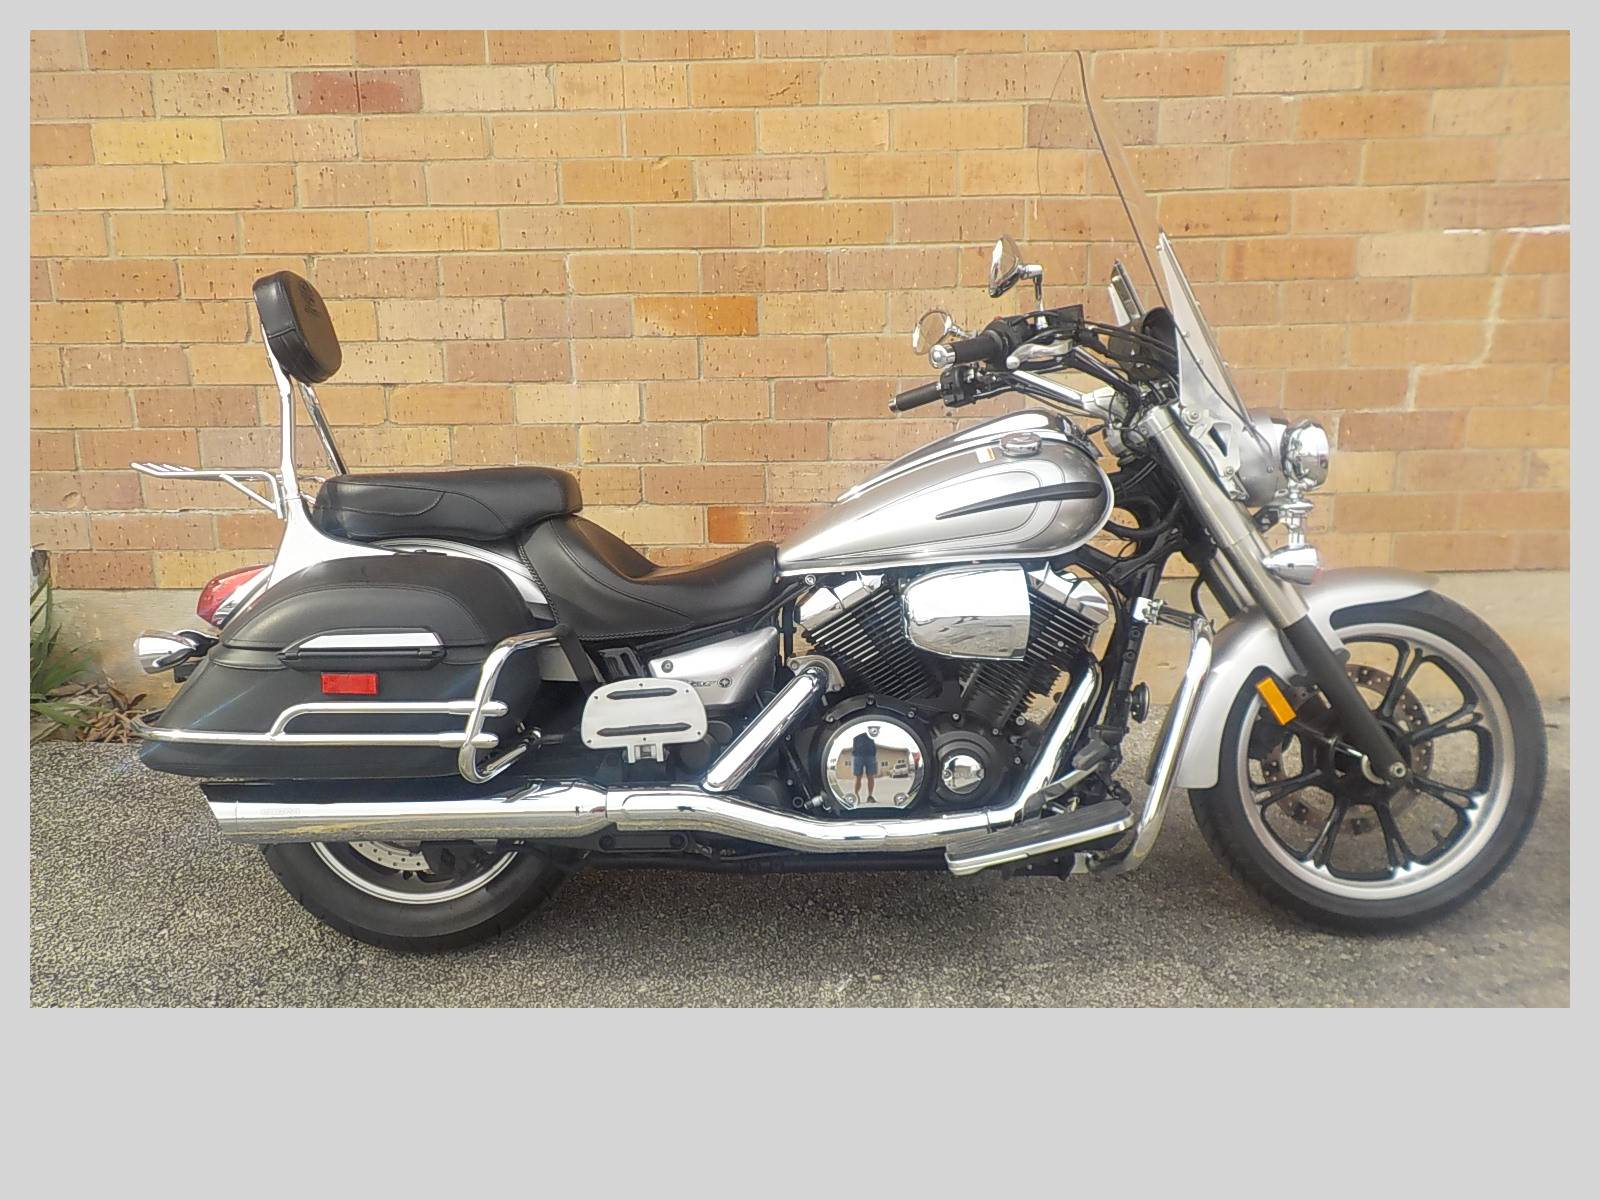 used 2012 yamaha v star 950 motorcycles in san antonio tx